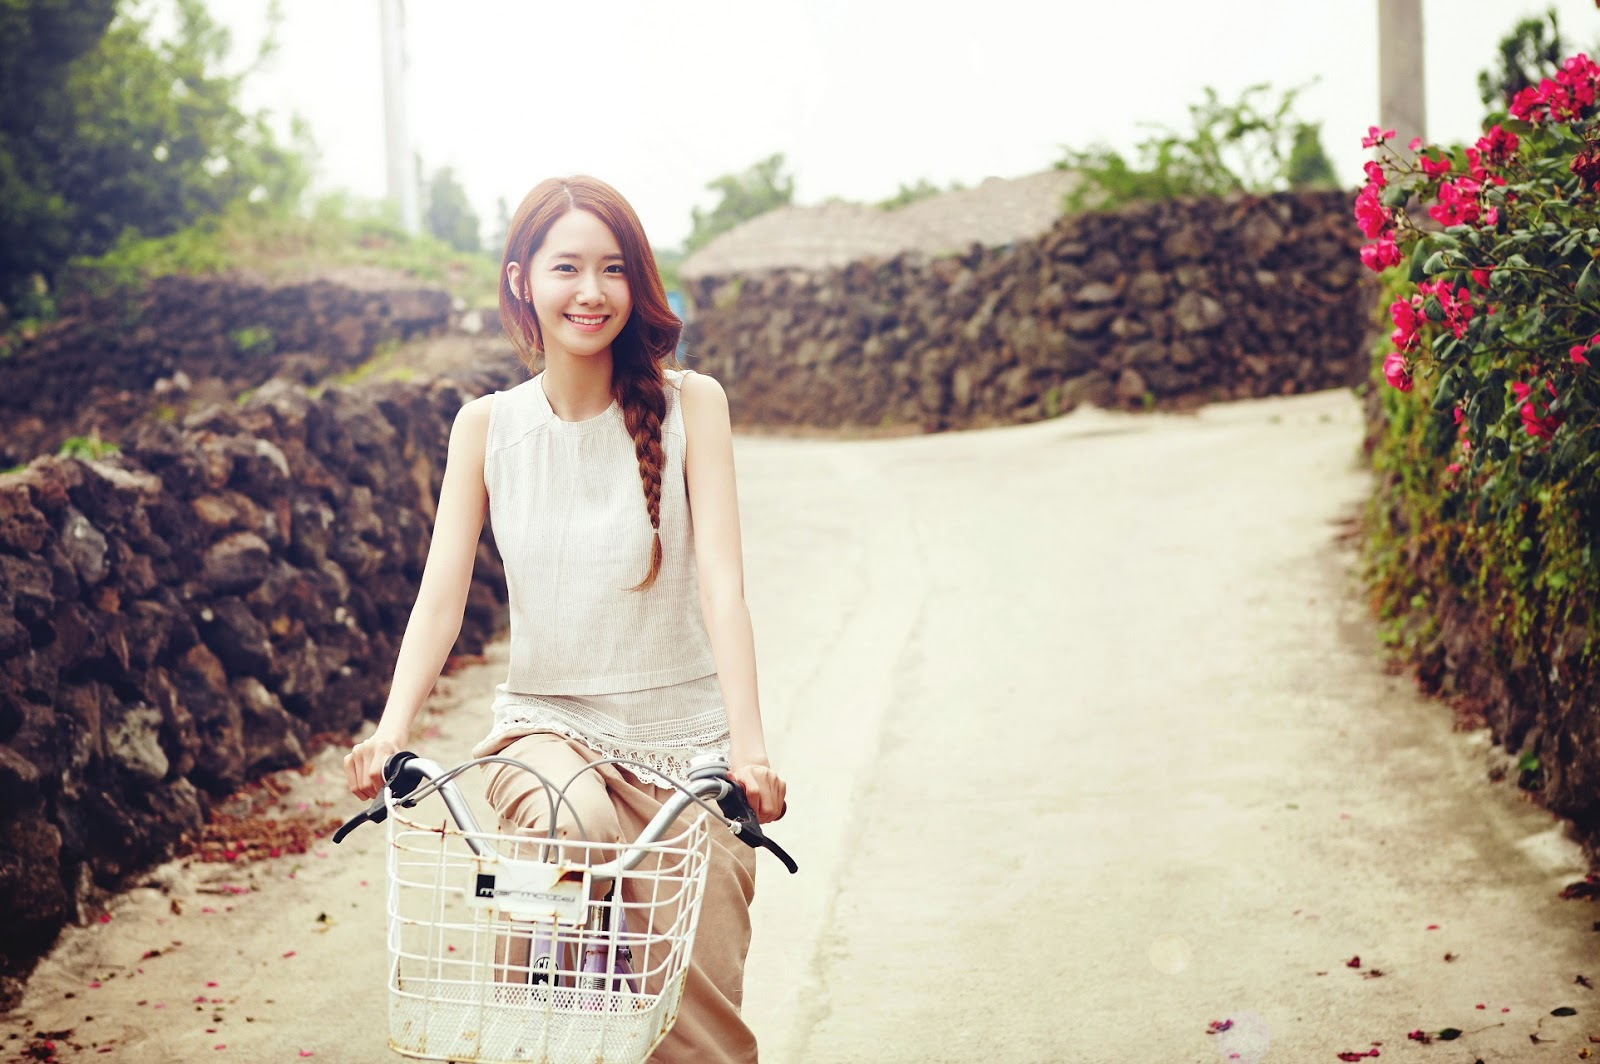 SNSD YoonA Innisfree Organic Green Cafe Wallpaper HD Hot Sexy Beauty 1600x1064